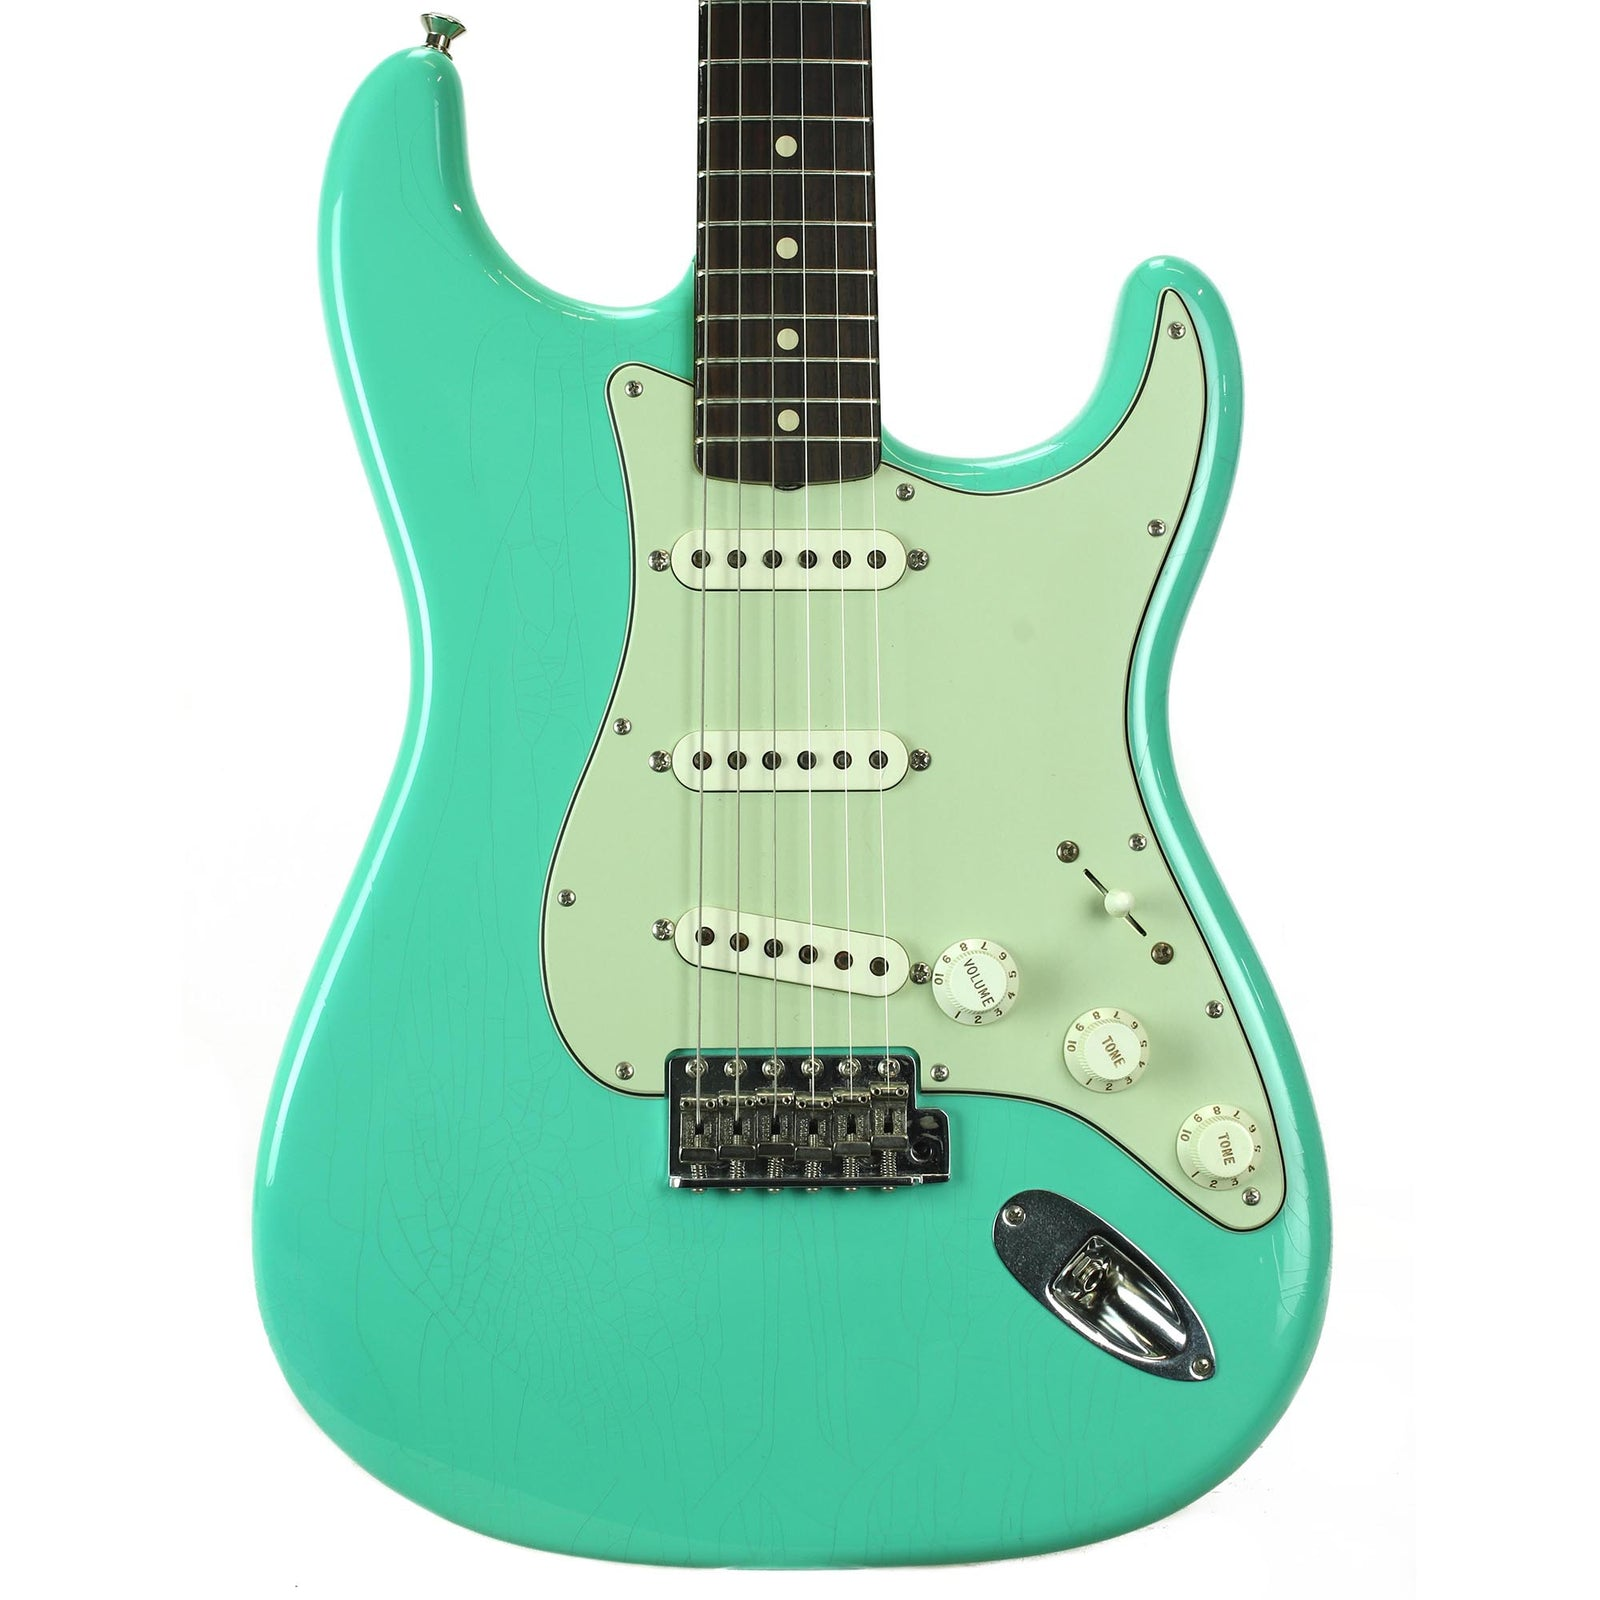 Fender Custom Shop '64 Stratocaster Closet Classic - Seafoam - Used